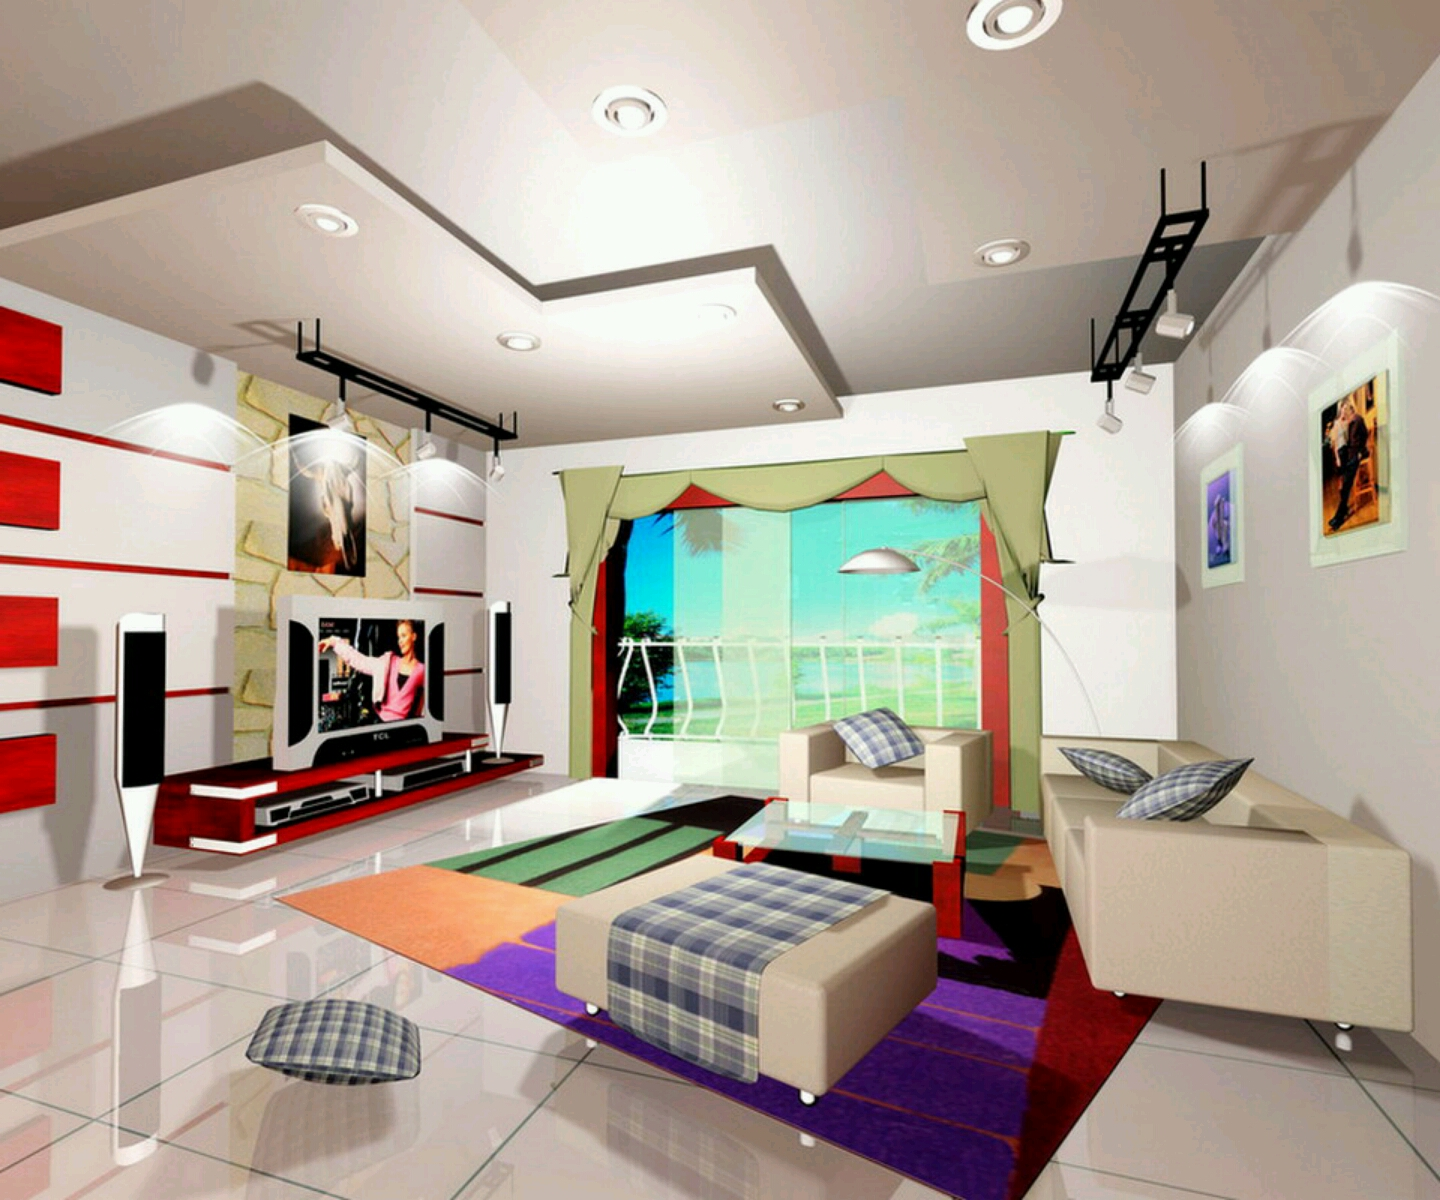 Ultra modern living rooms interior designs decoration - Modern house interior design ...